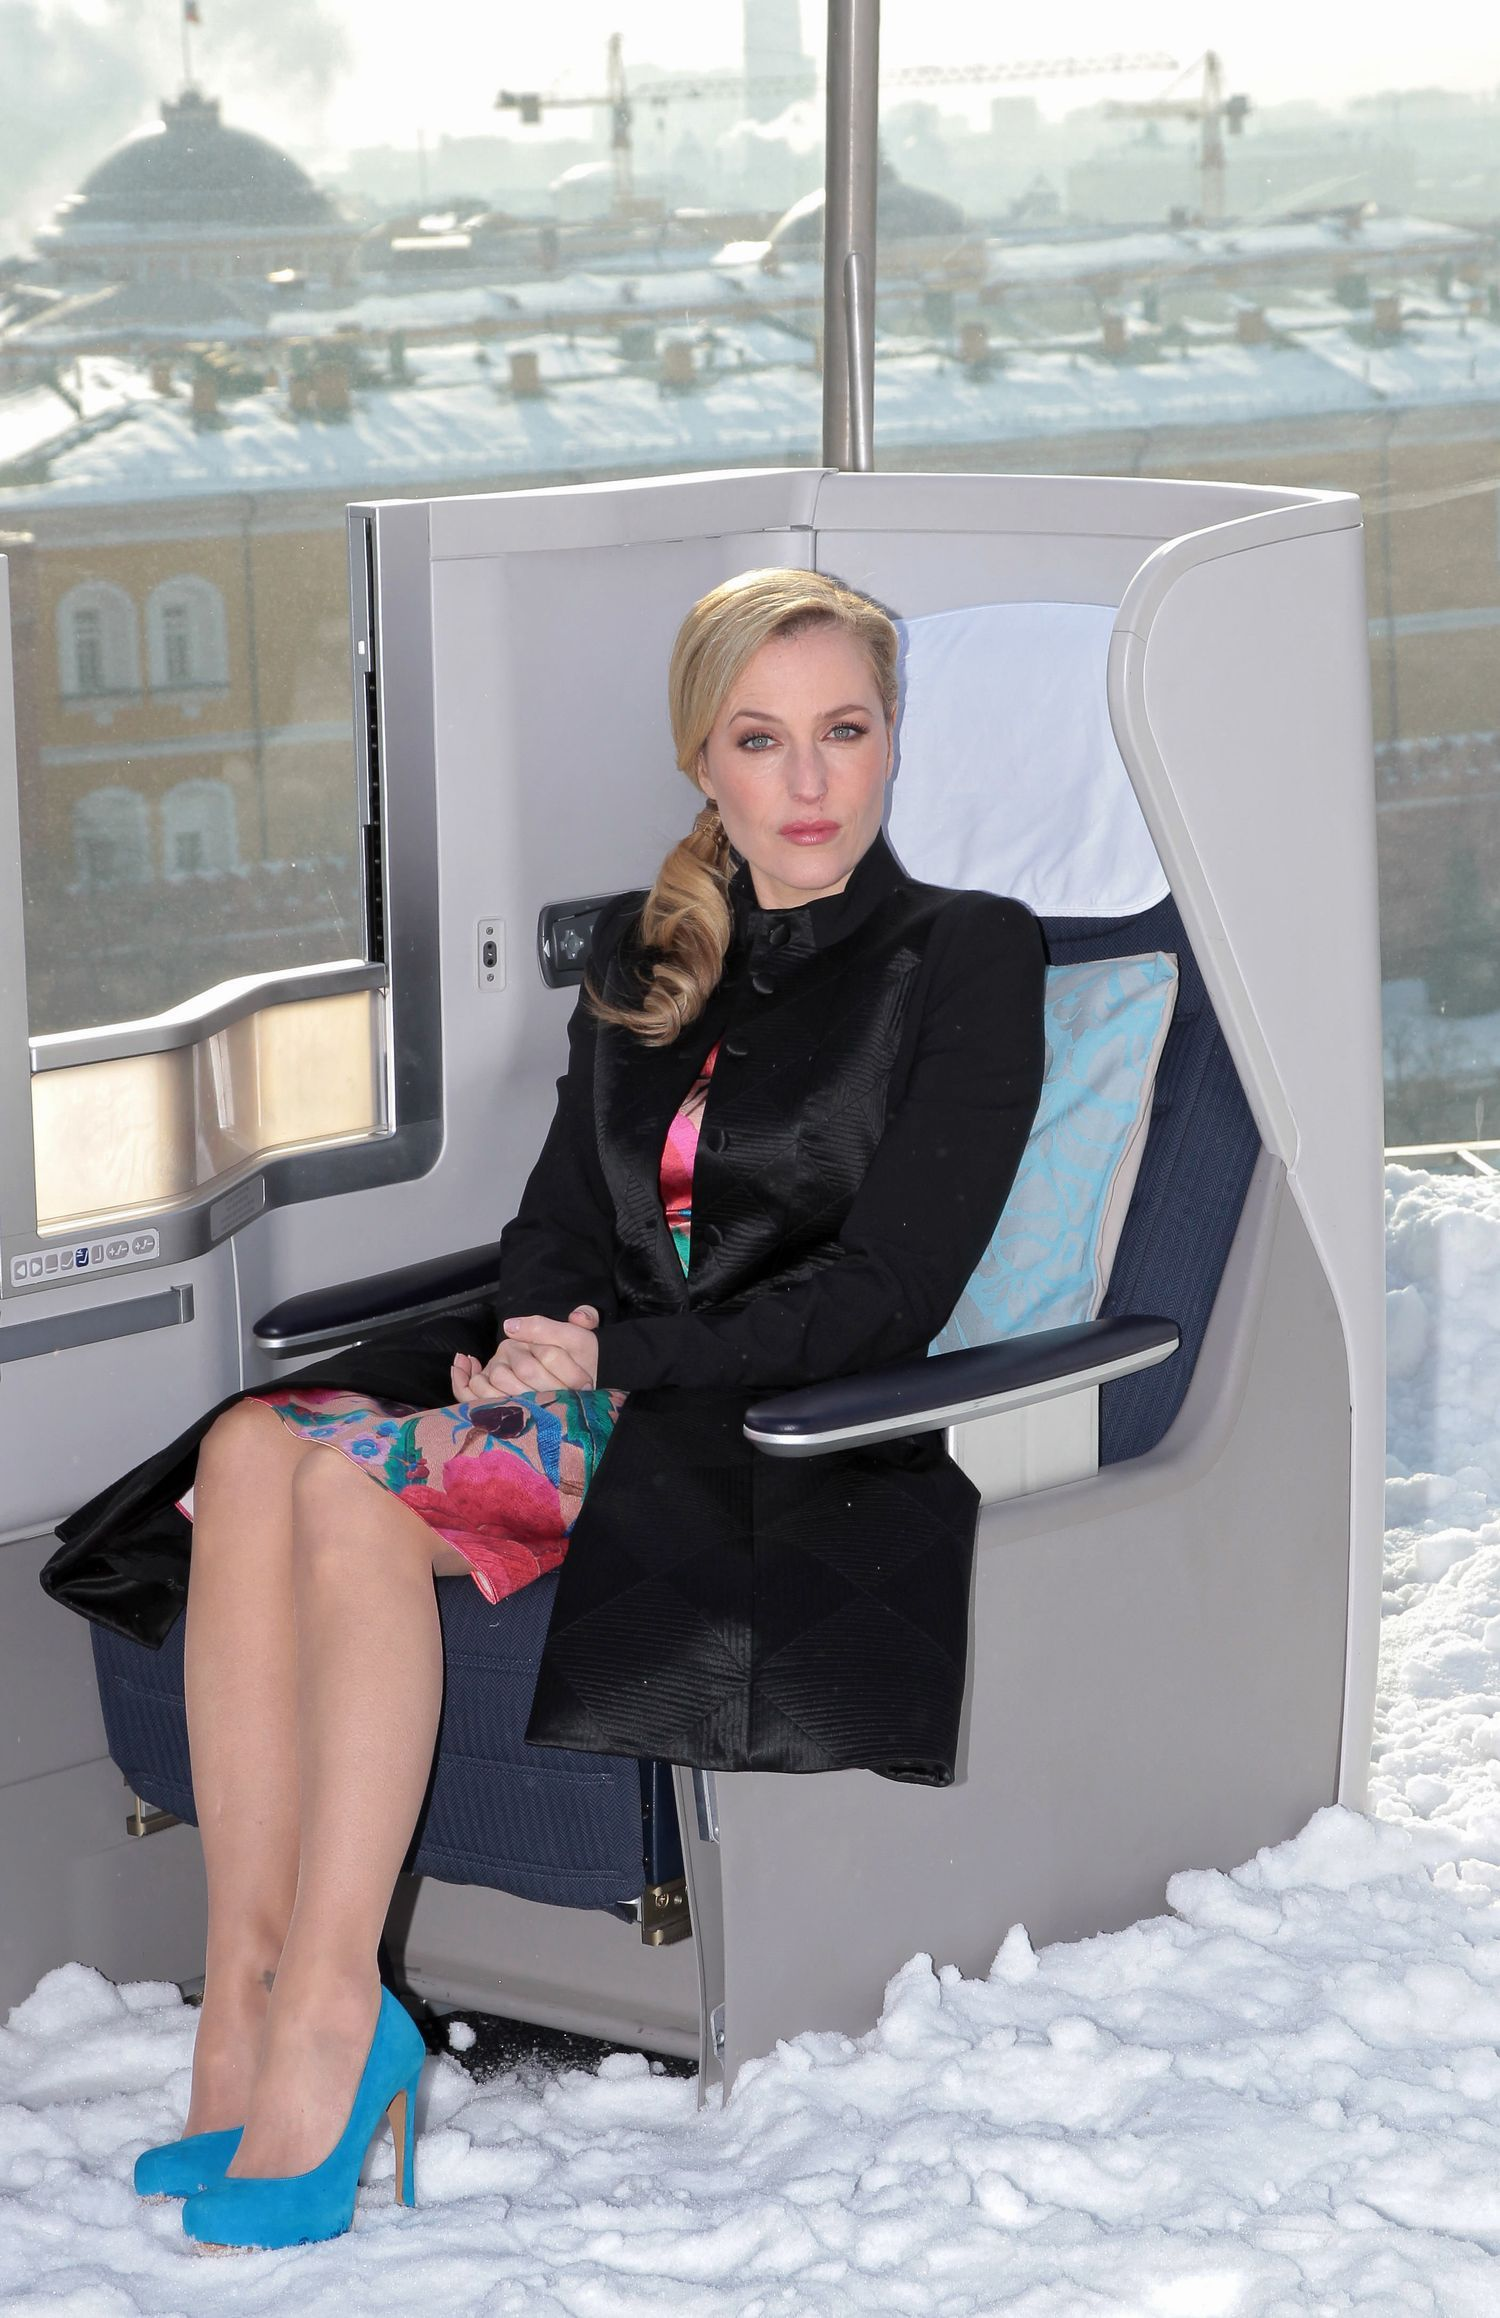 Gillian Anderson The Fall Wallpaper Gillian Anderson In Pantyhose More Pictures Here Http